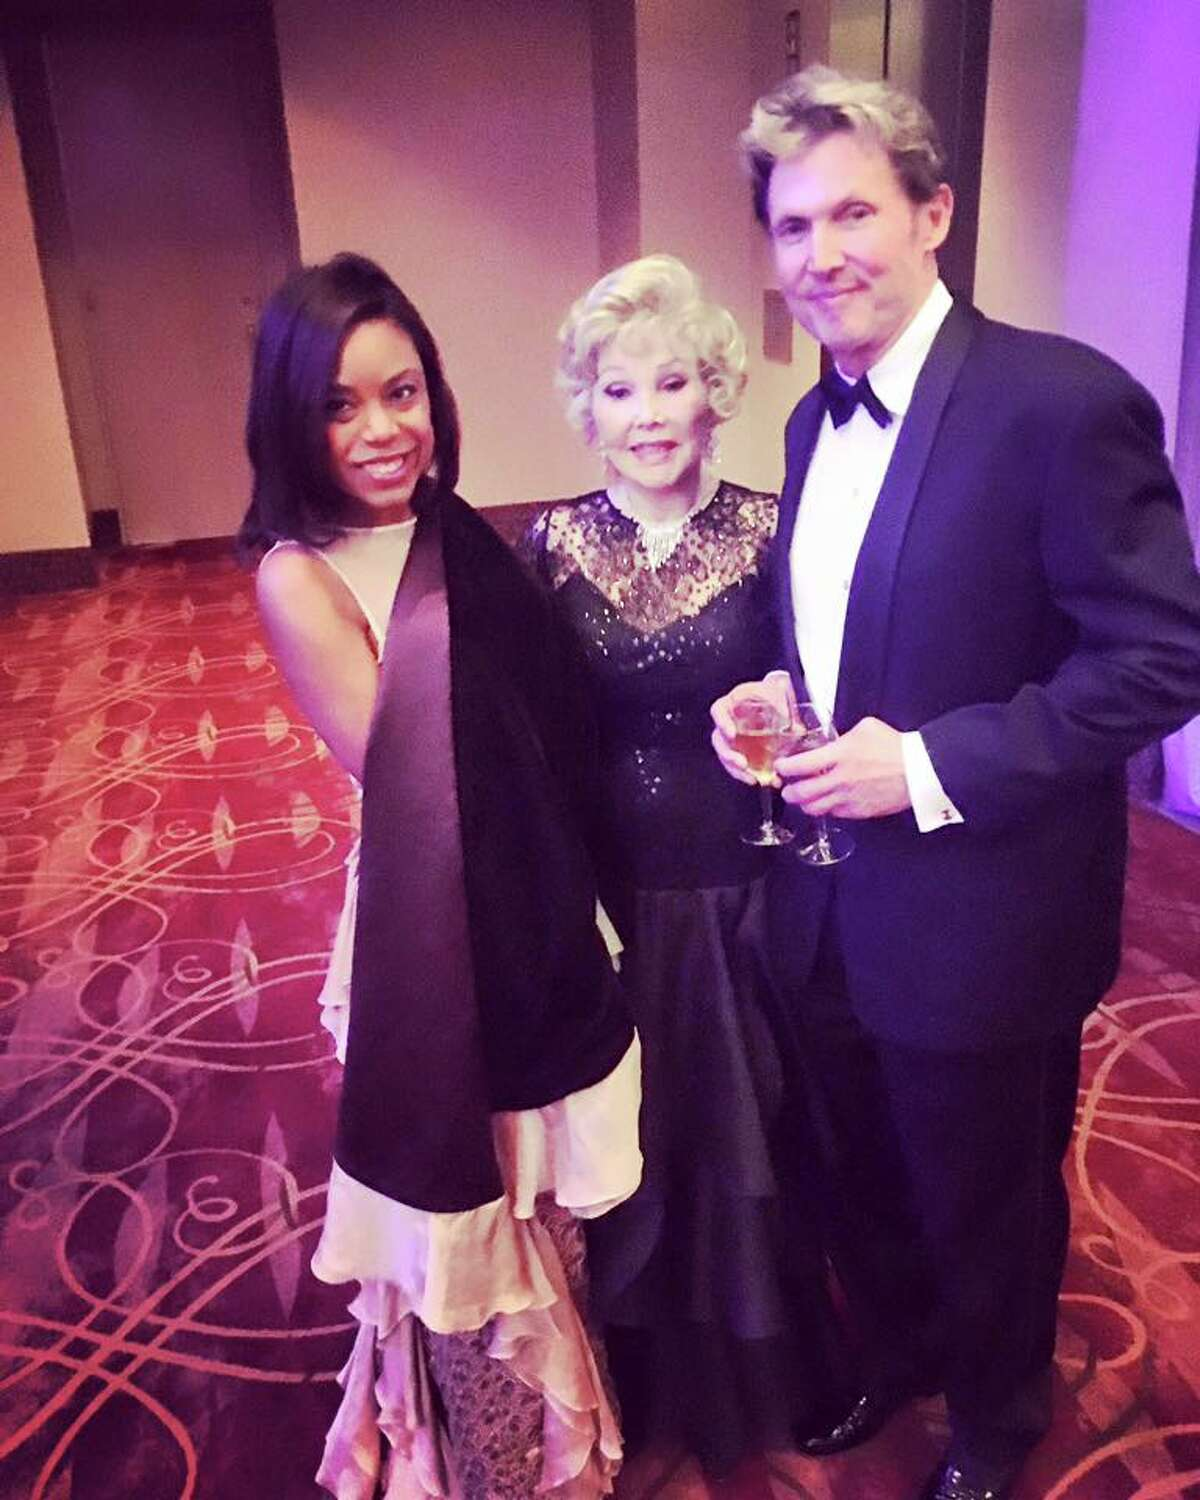 Amber Elliott, Joanne Herring, and Beau King at the Houston Ballet Ball